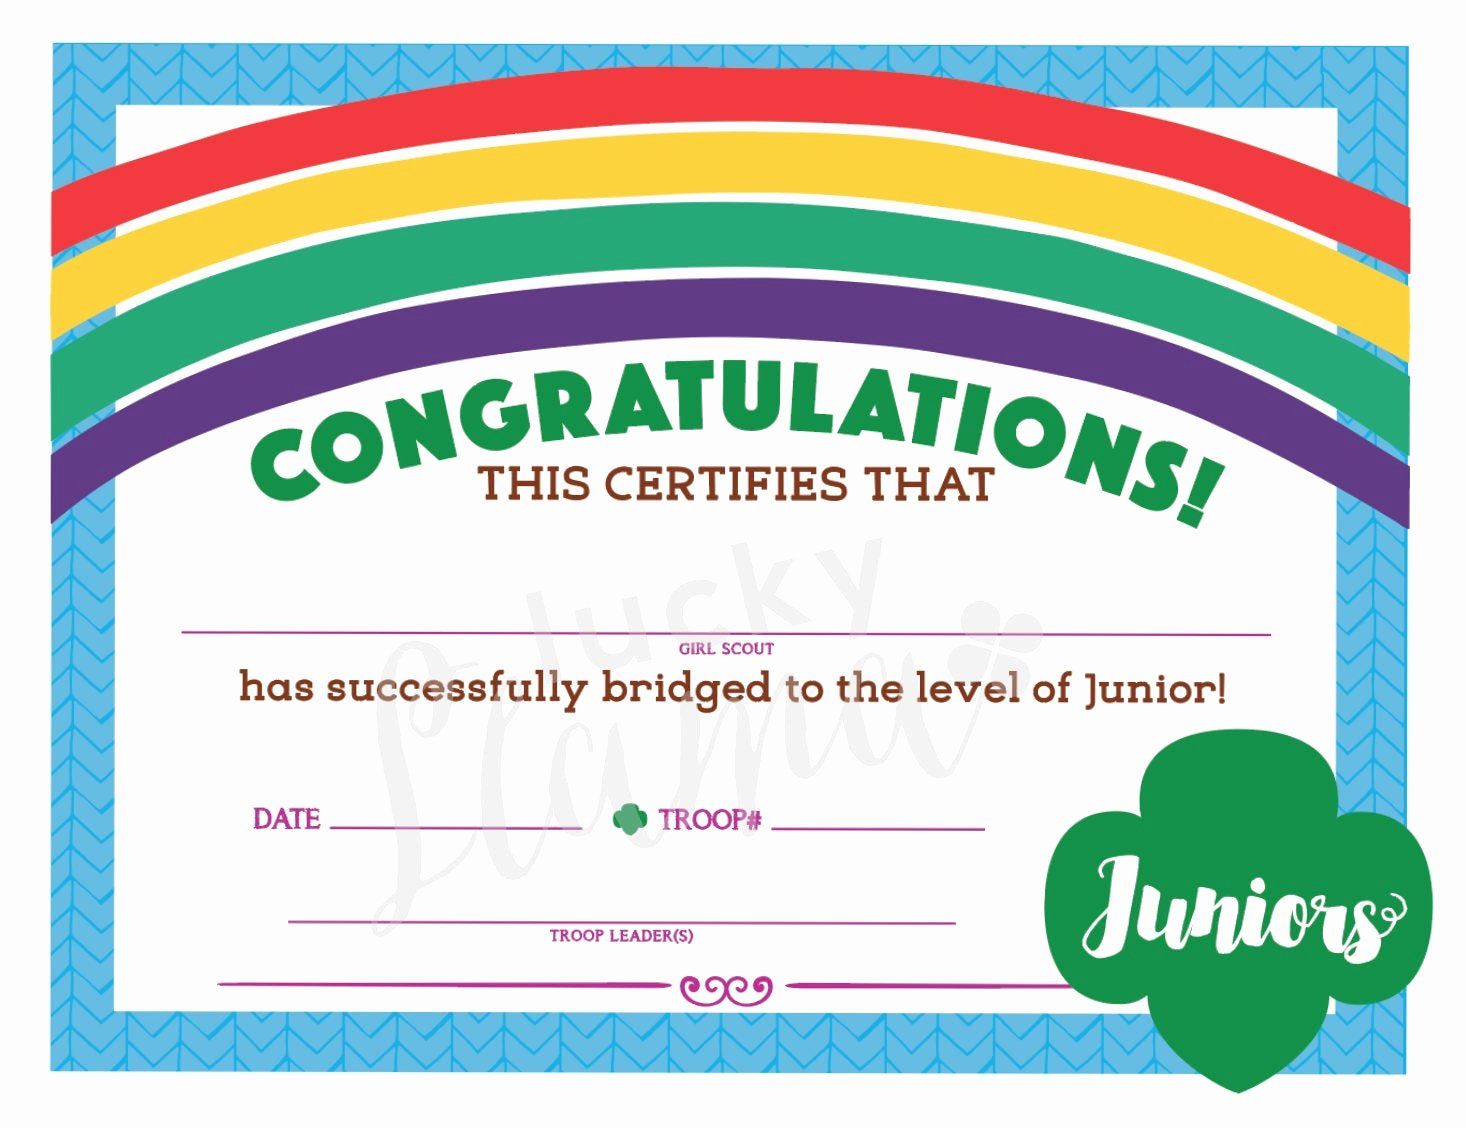 Girl Scout Bridging Certificates Elegant Girl Scouts Bridge to Juniors Certificate Instant Download